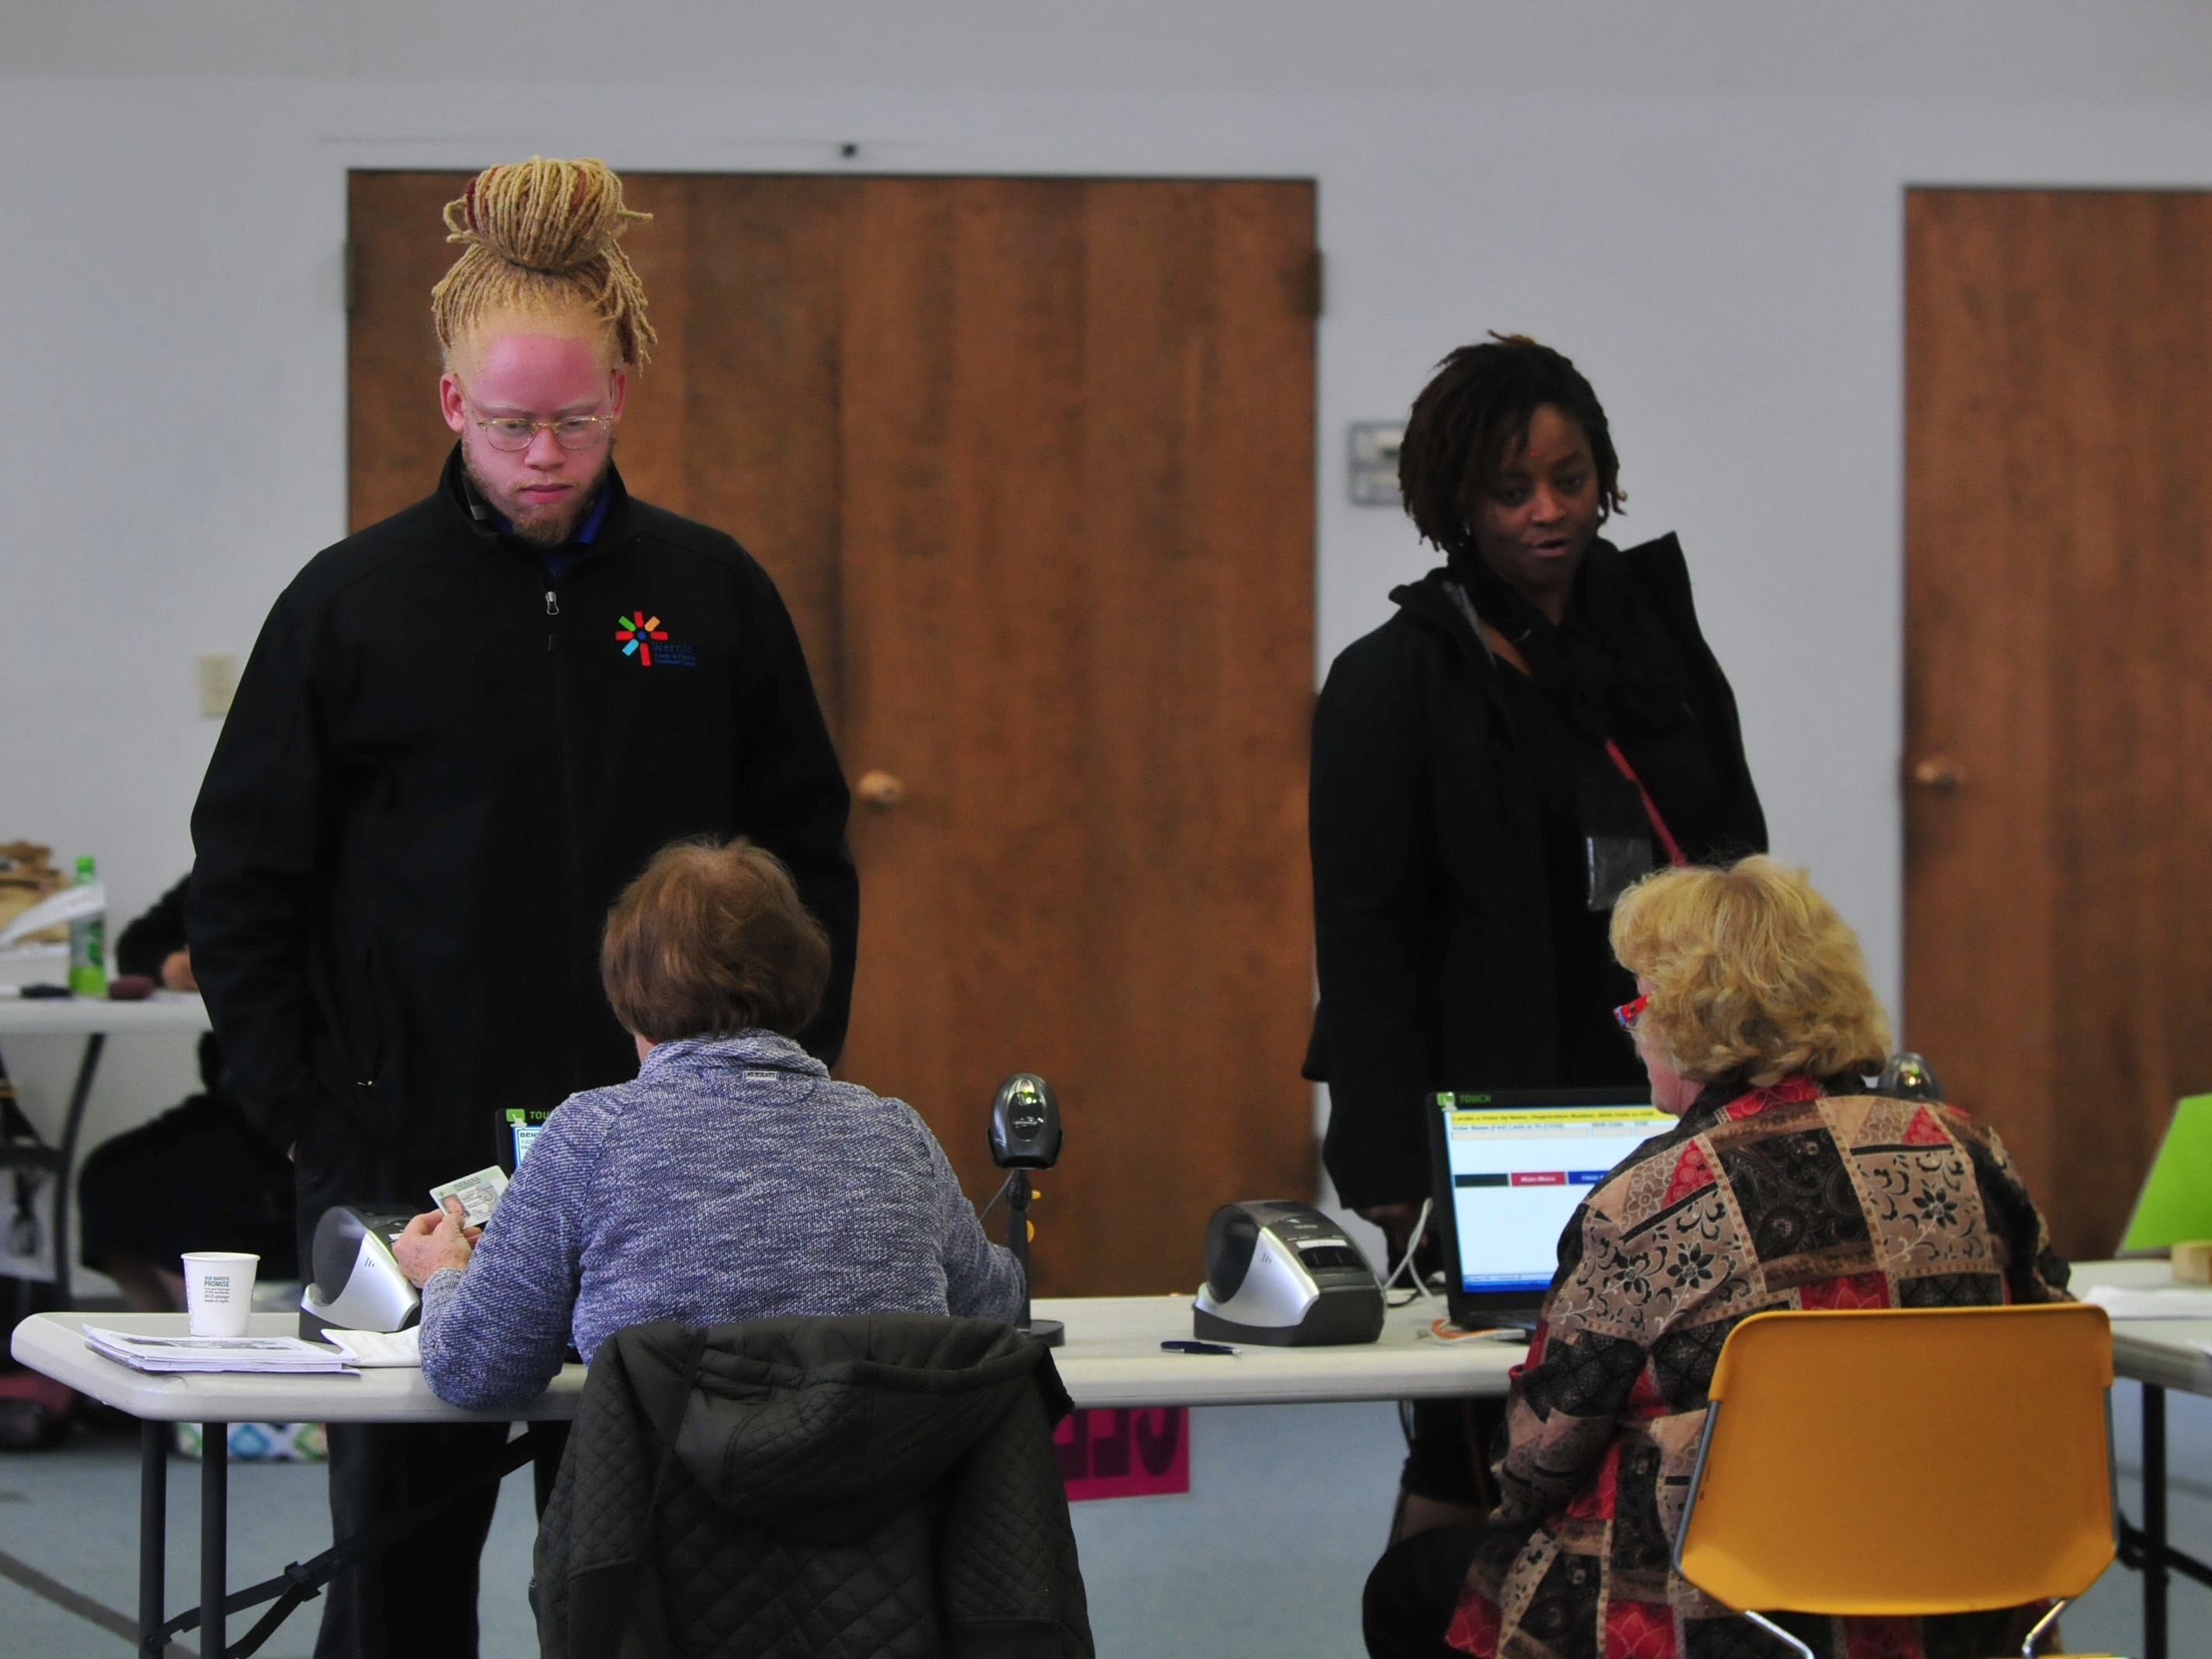 Wayne County voters participated in the general election Tuesday by voting at the vote center at First Baptist Church in Richmond.